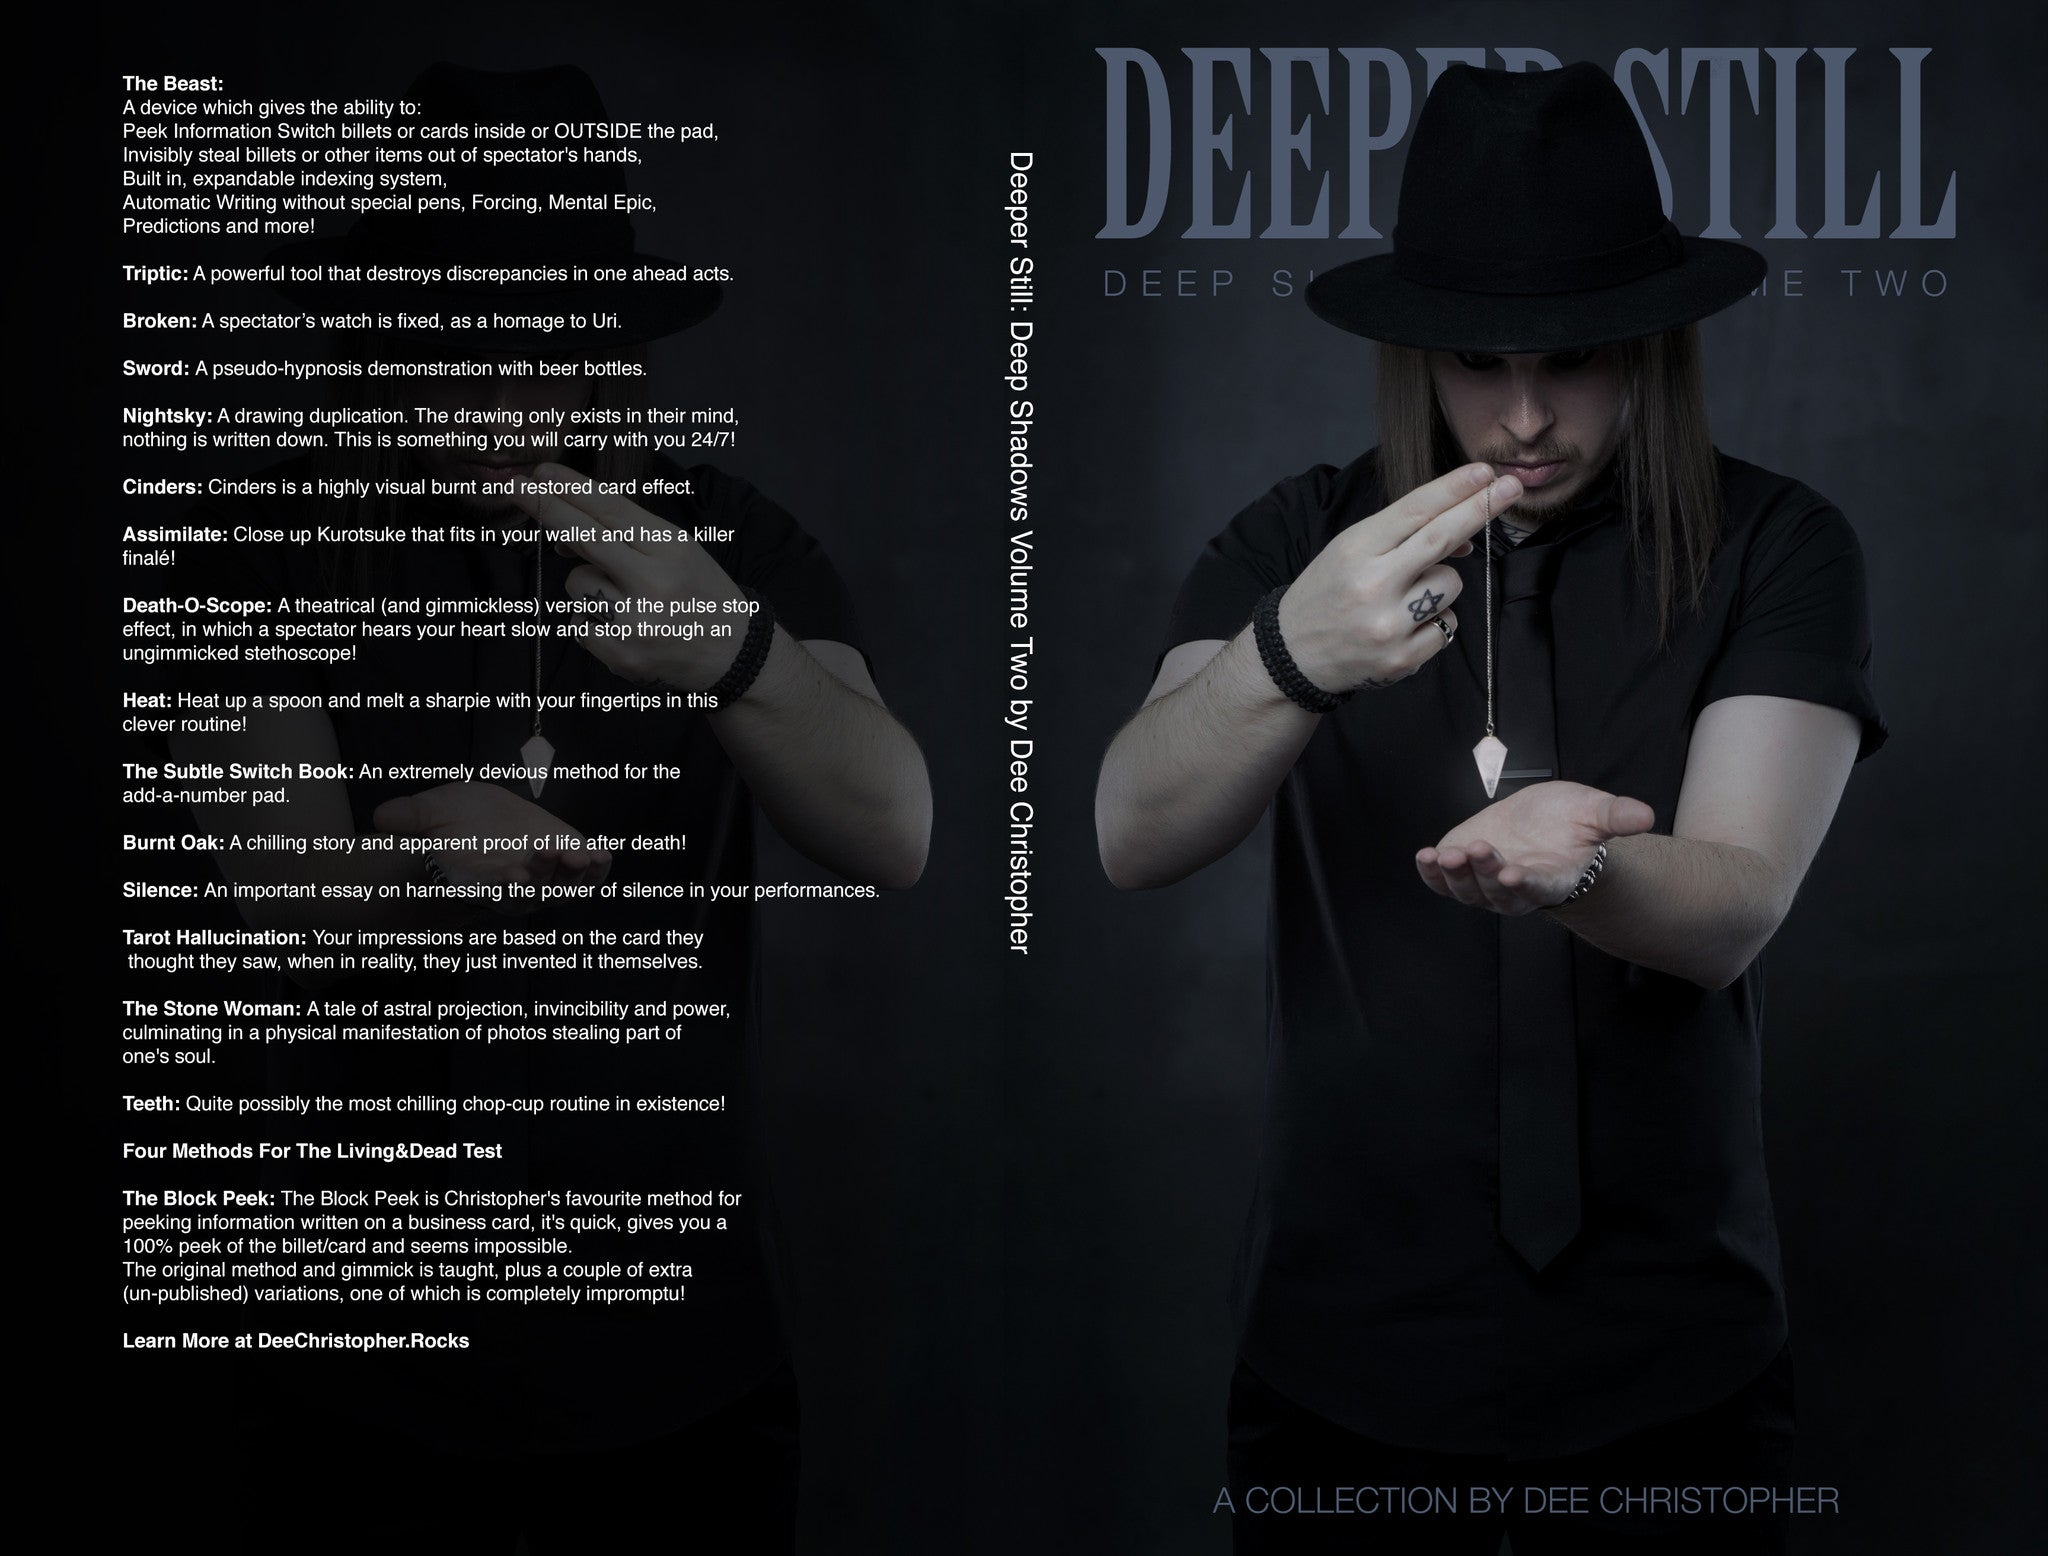 Deeper Still: Deep Shadows Volume 2